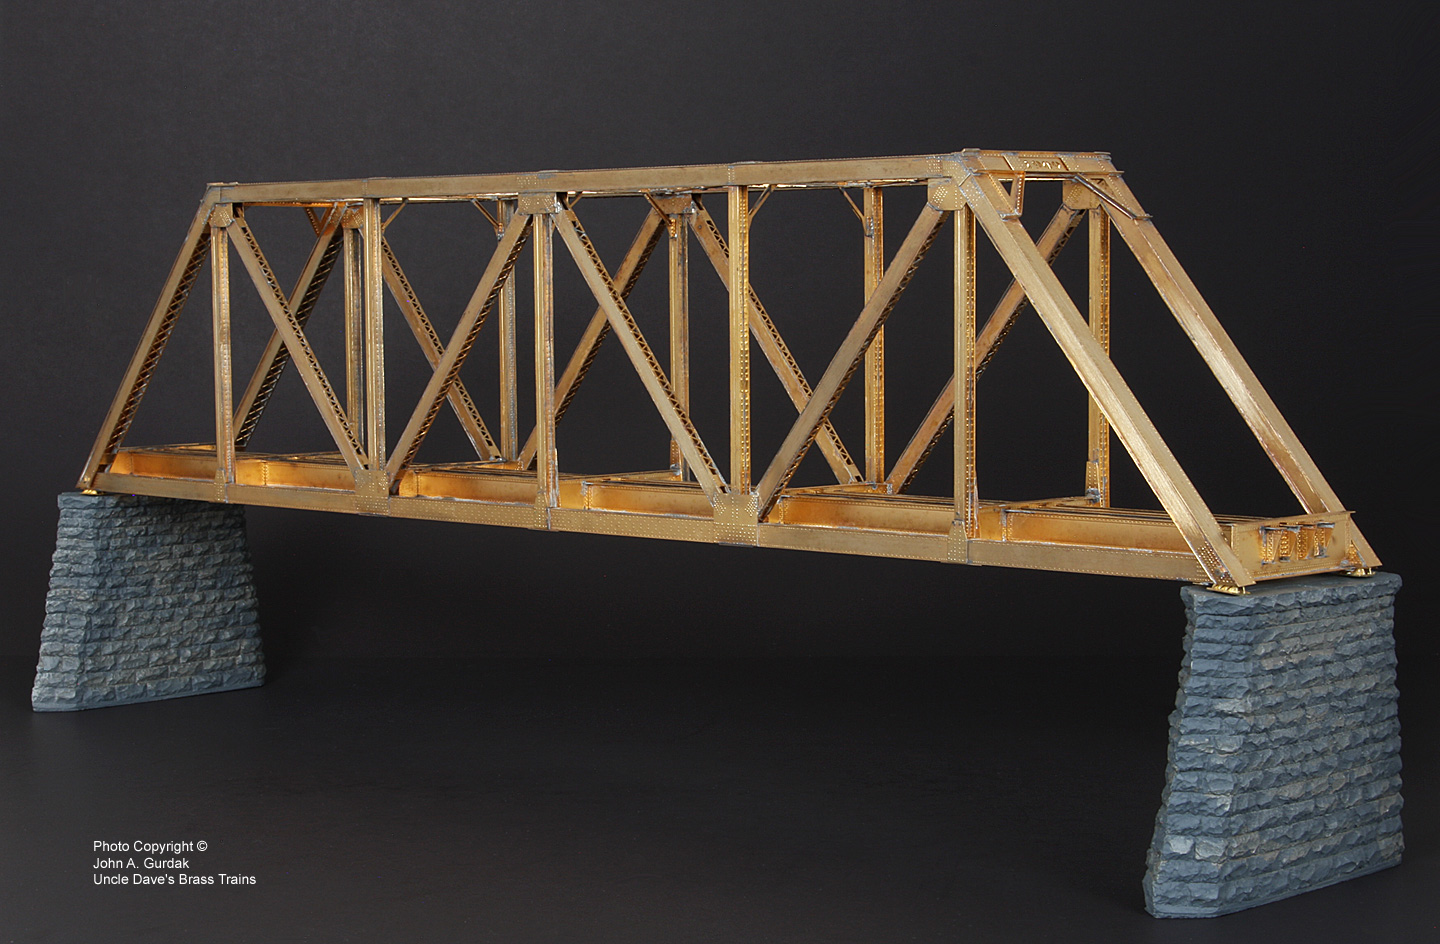 Strongest truss bridge balsa wood pictures to pin on for Bridge design